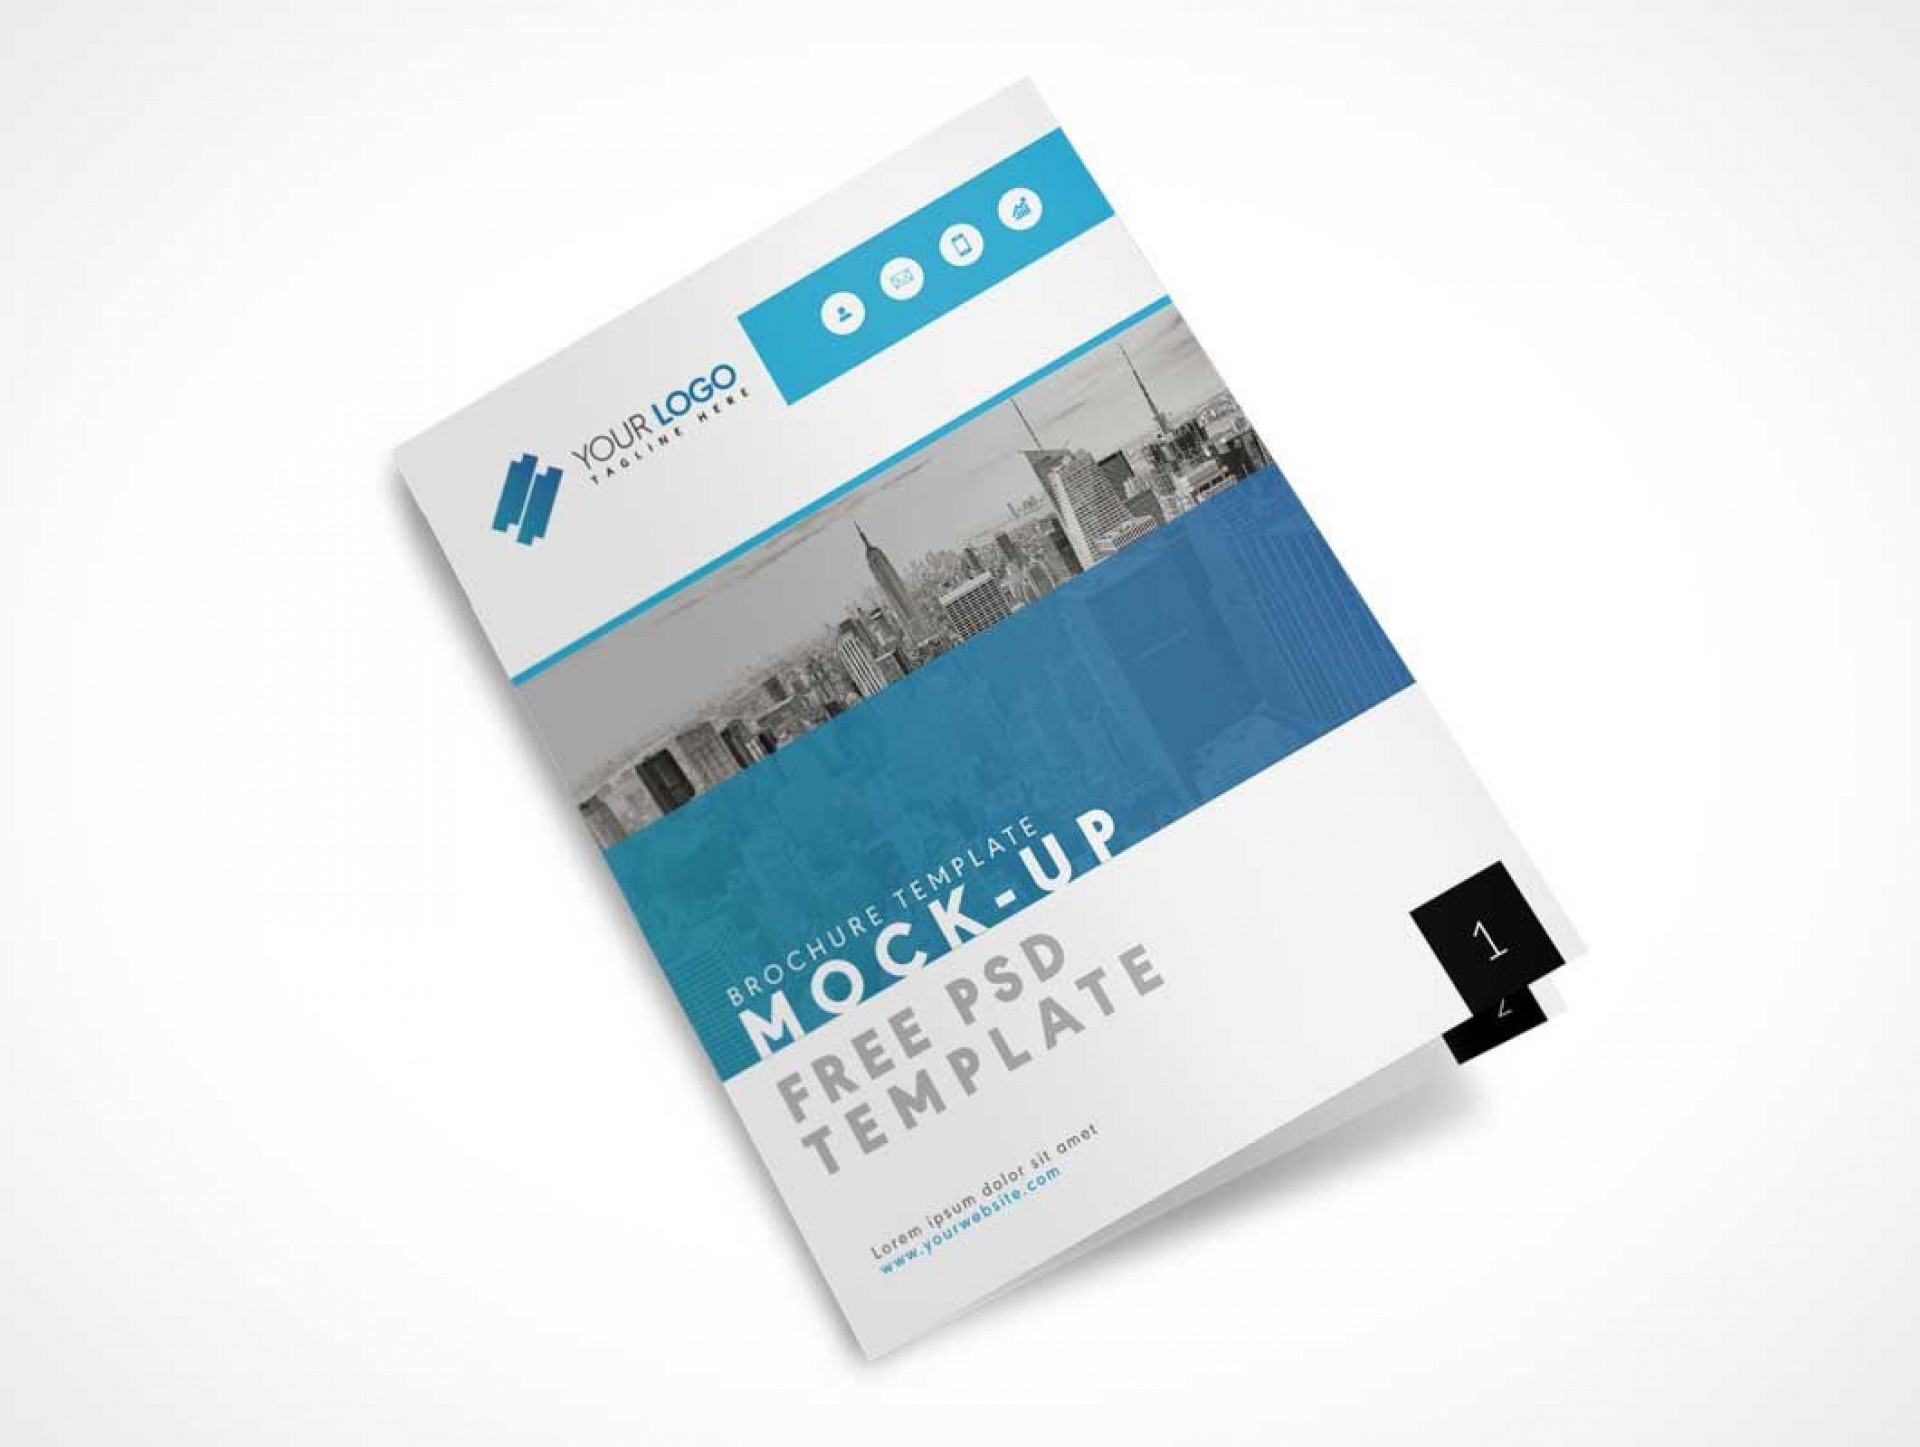 009 Exceptional Brochure Template Photoshop Cs6 Free Download Inspiration 1920